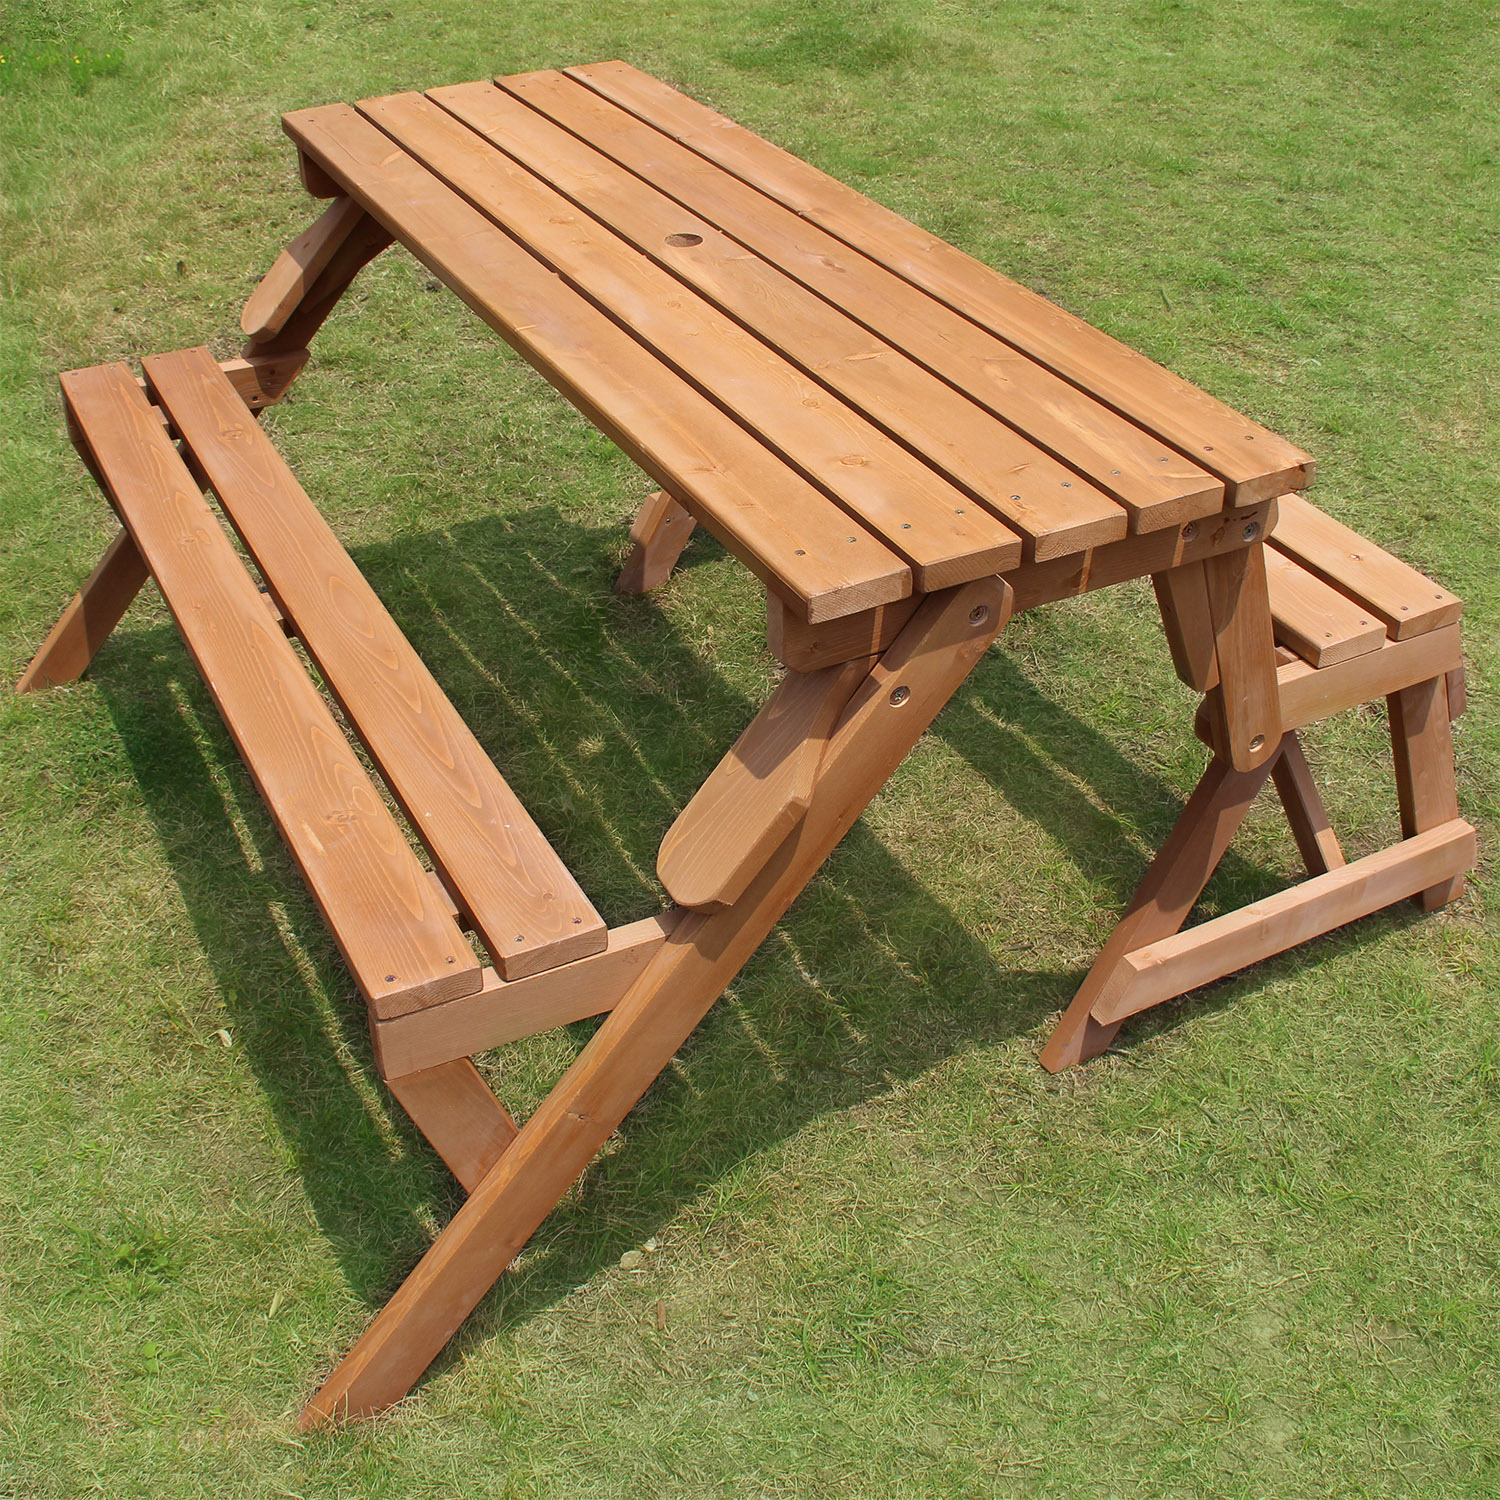 merry garden adirondack chair covers event products partly assembled, interchangeable picnic table/garden bench